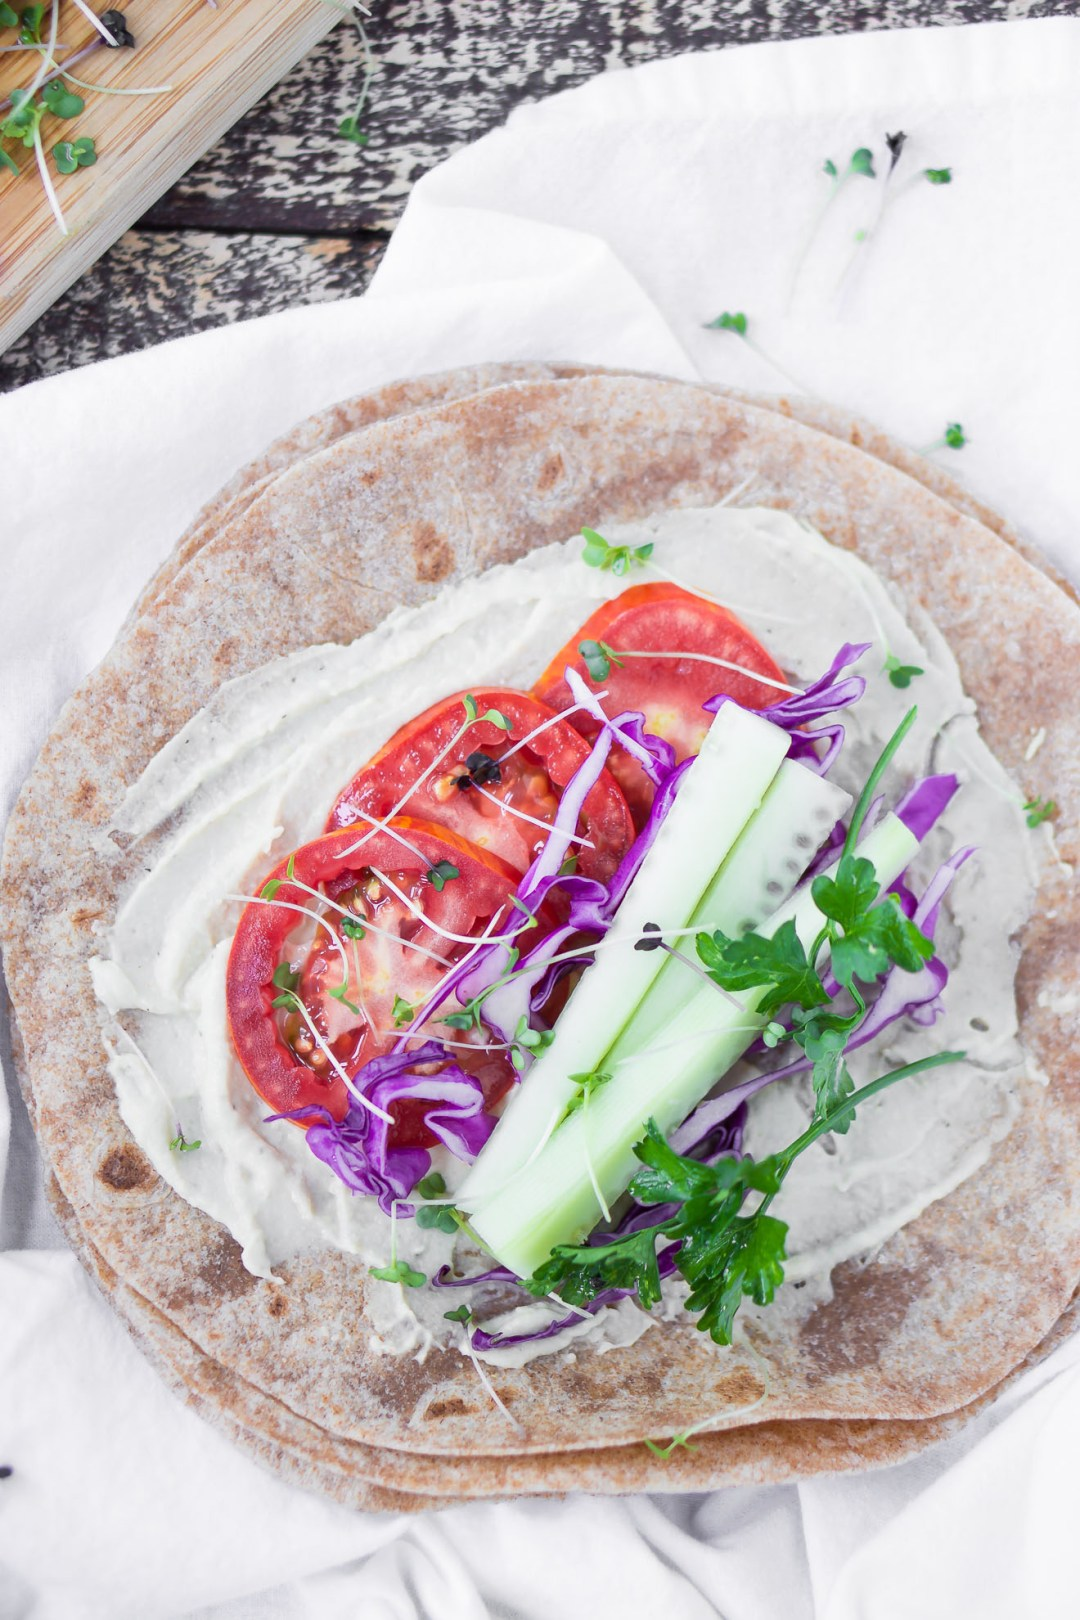 Simple-Hummus-Wraps-perfect-for-on-the-go-3